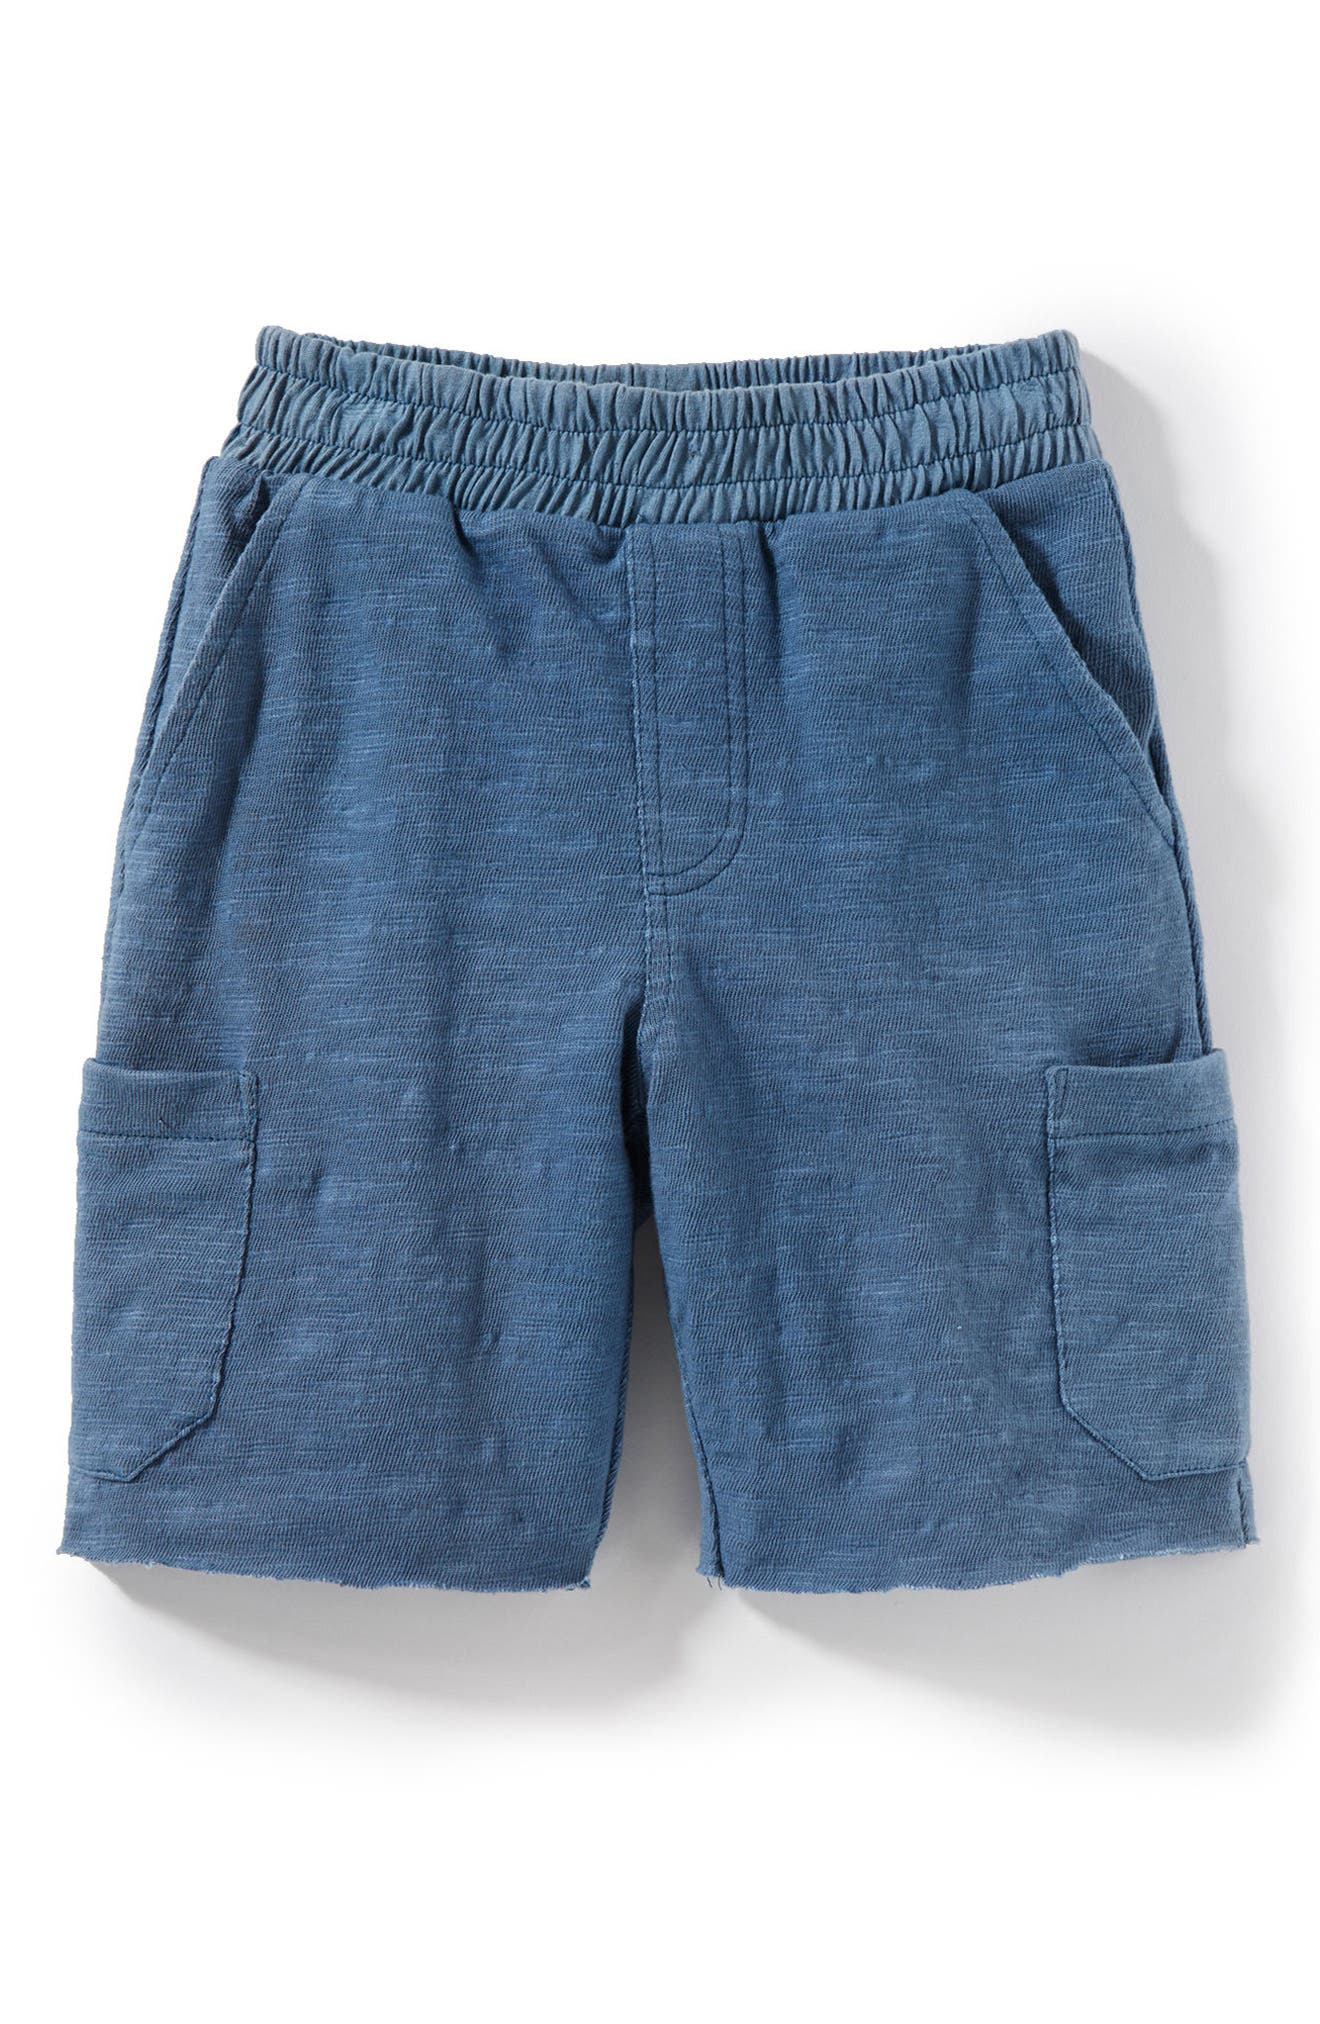 Asher Knit Shorts,                         Main,                         color, Indigo